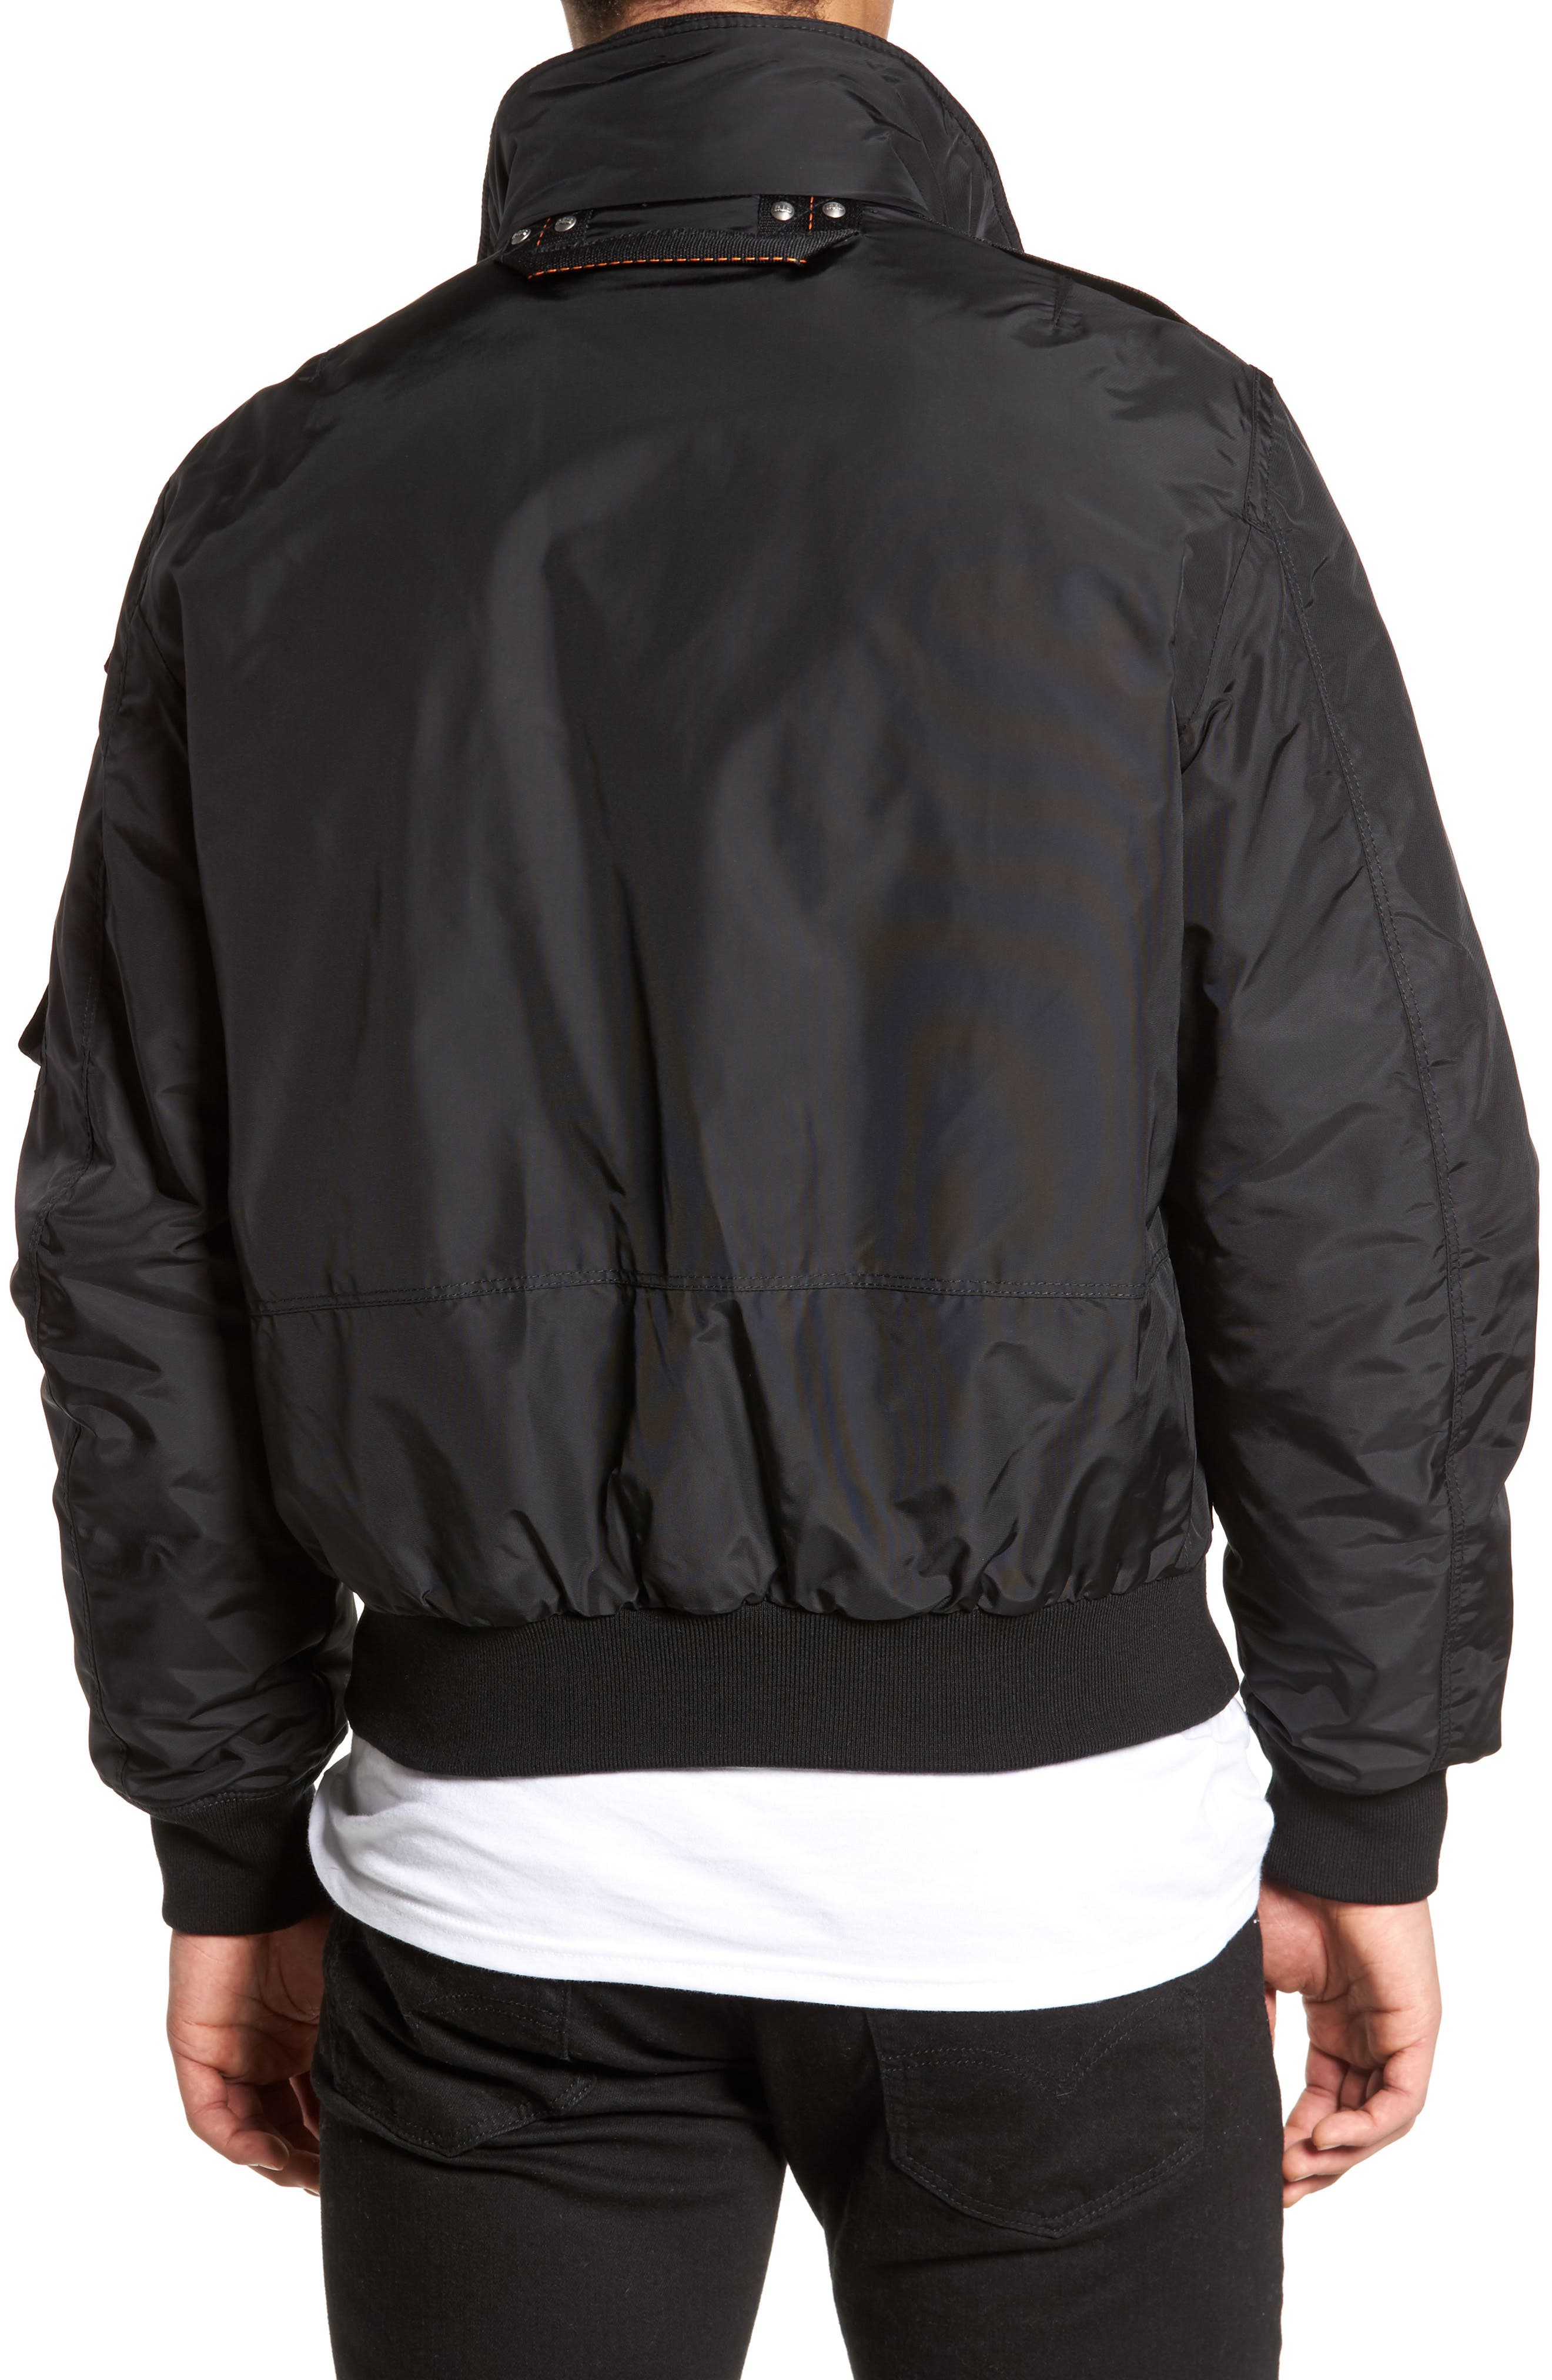 Masterpiece Slim Fit Midweight Down Bomber Jacket,                             Alternate thumbnail 2, color,                             001